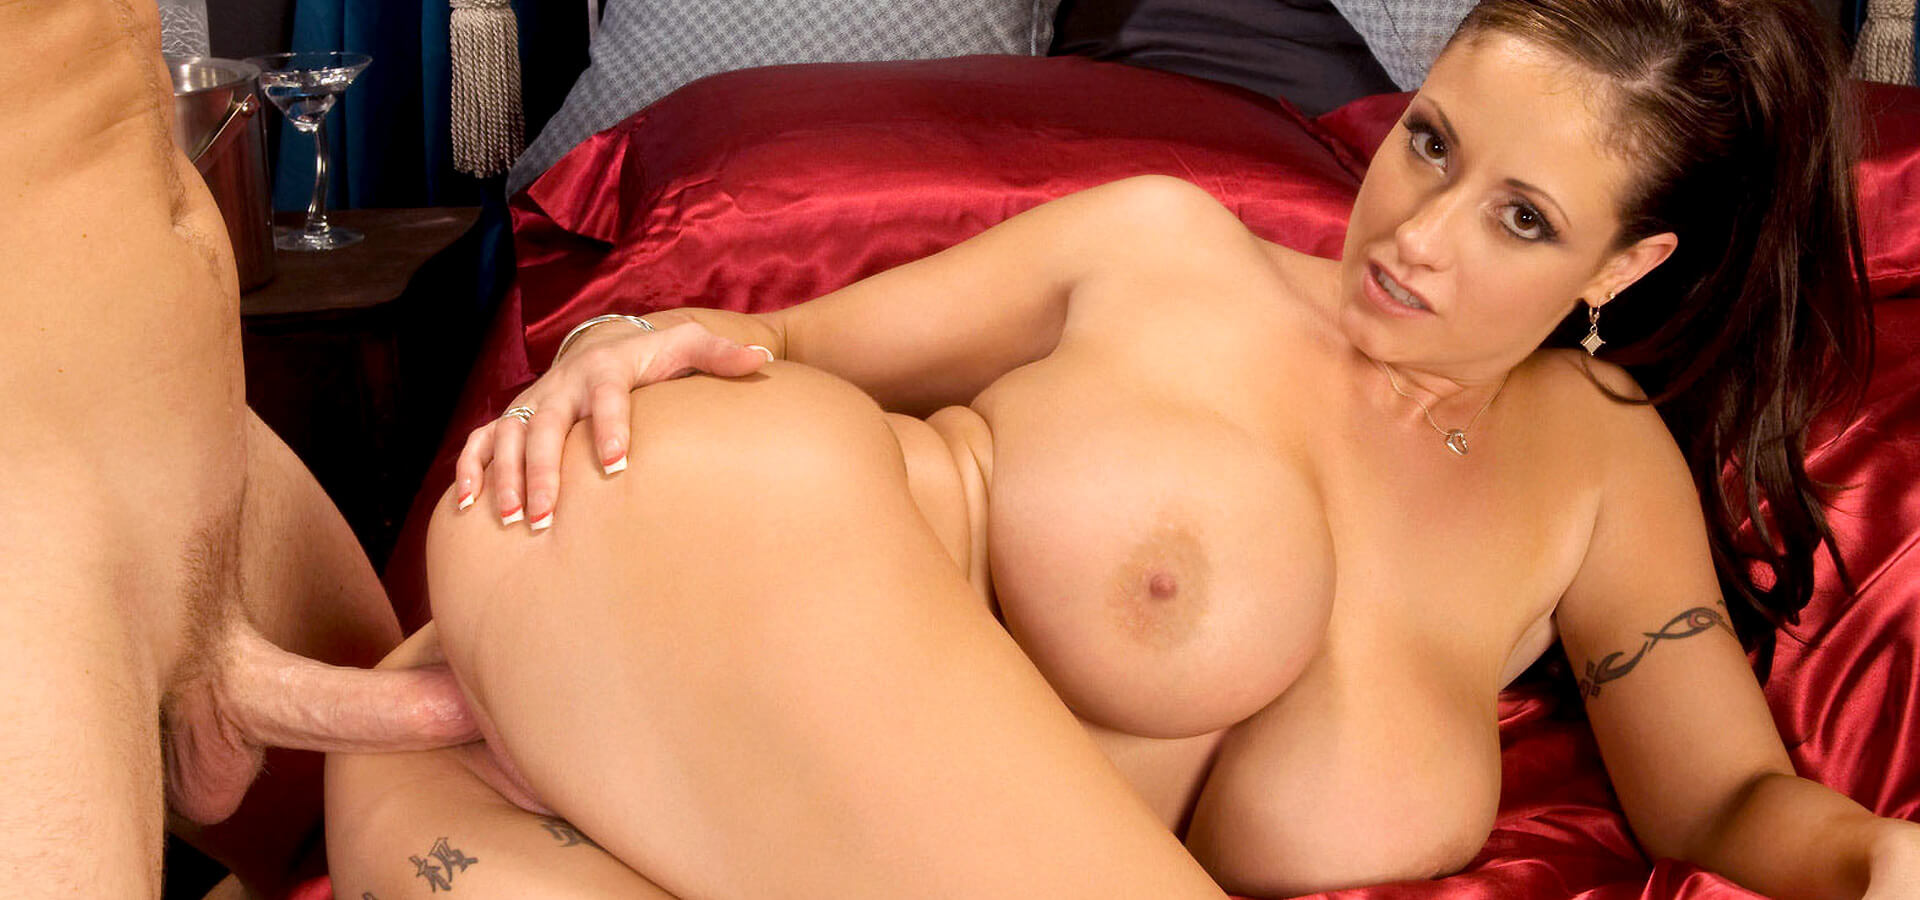 Eva Notty babes - Join Now!